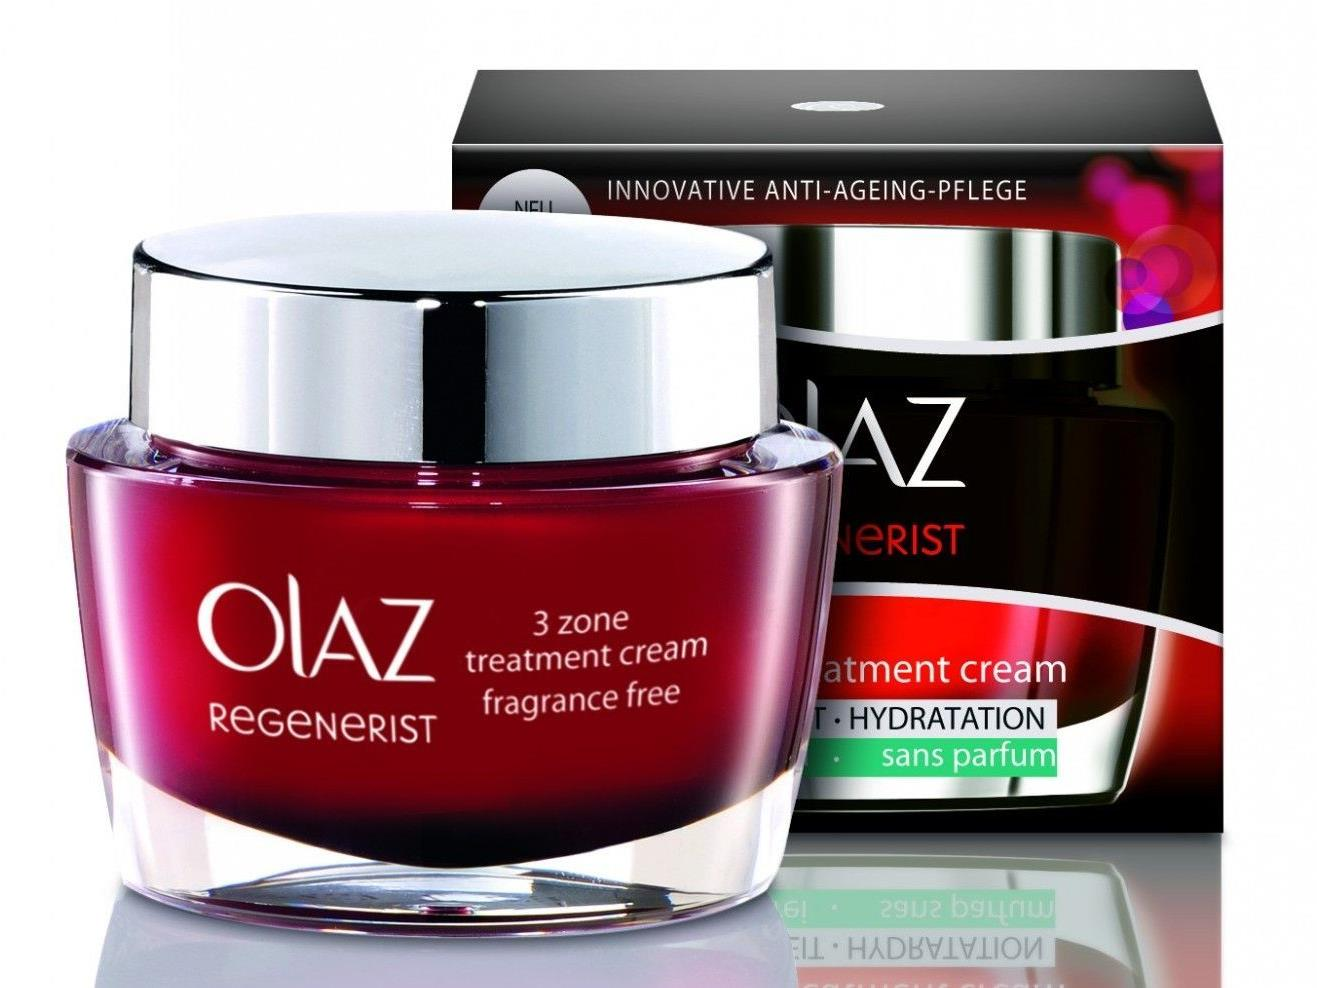 Wir verlosen 3 Stück Olaz Regenerist 3 Zone Treatment Cream parfumfrei.